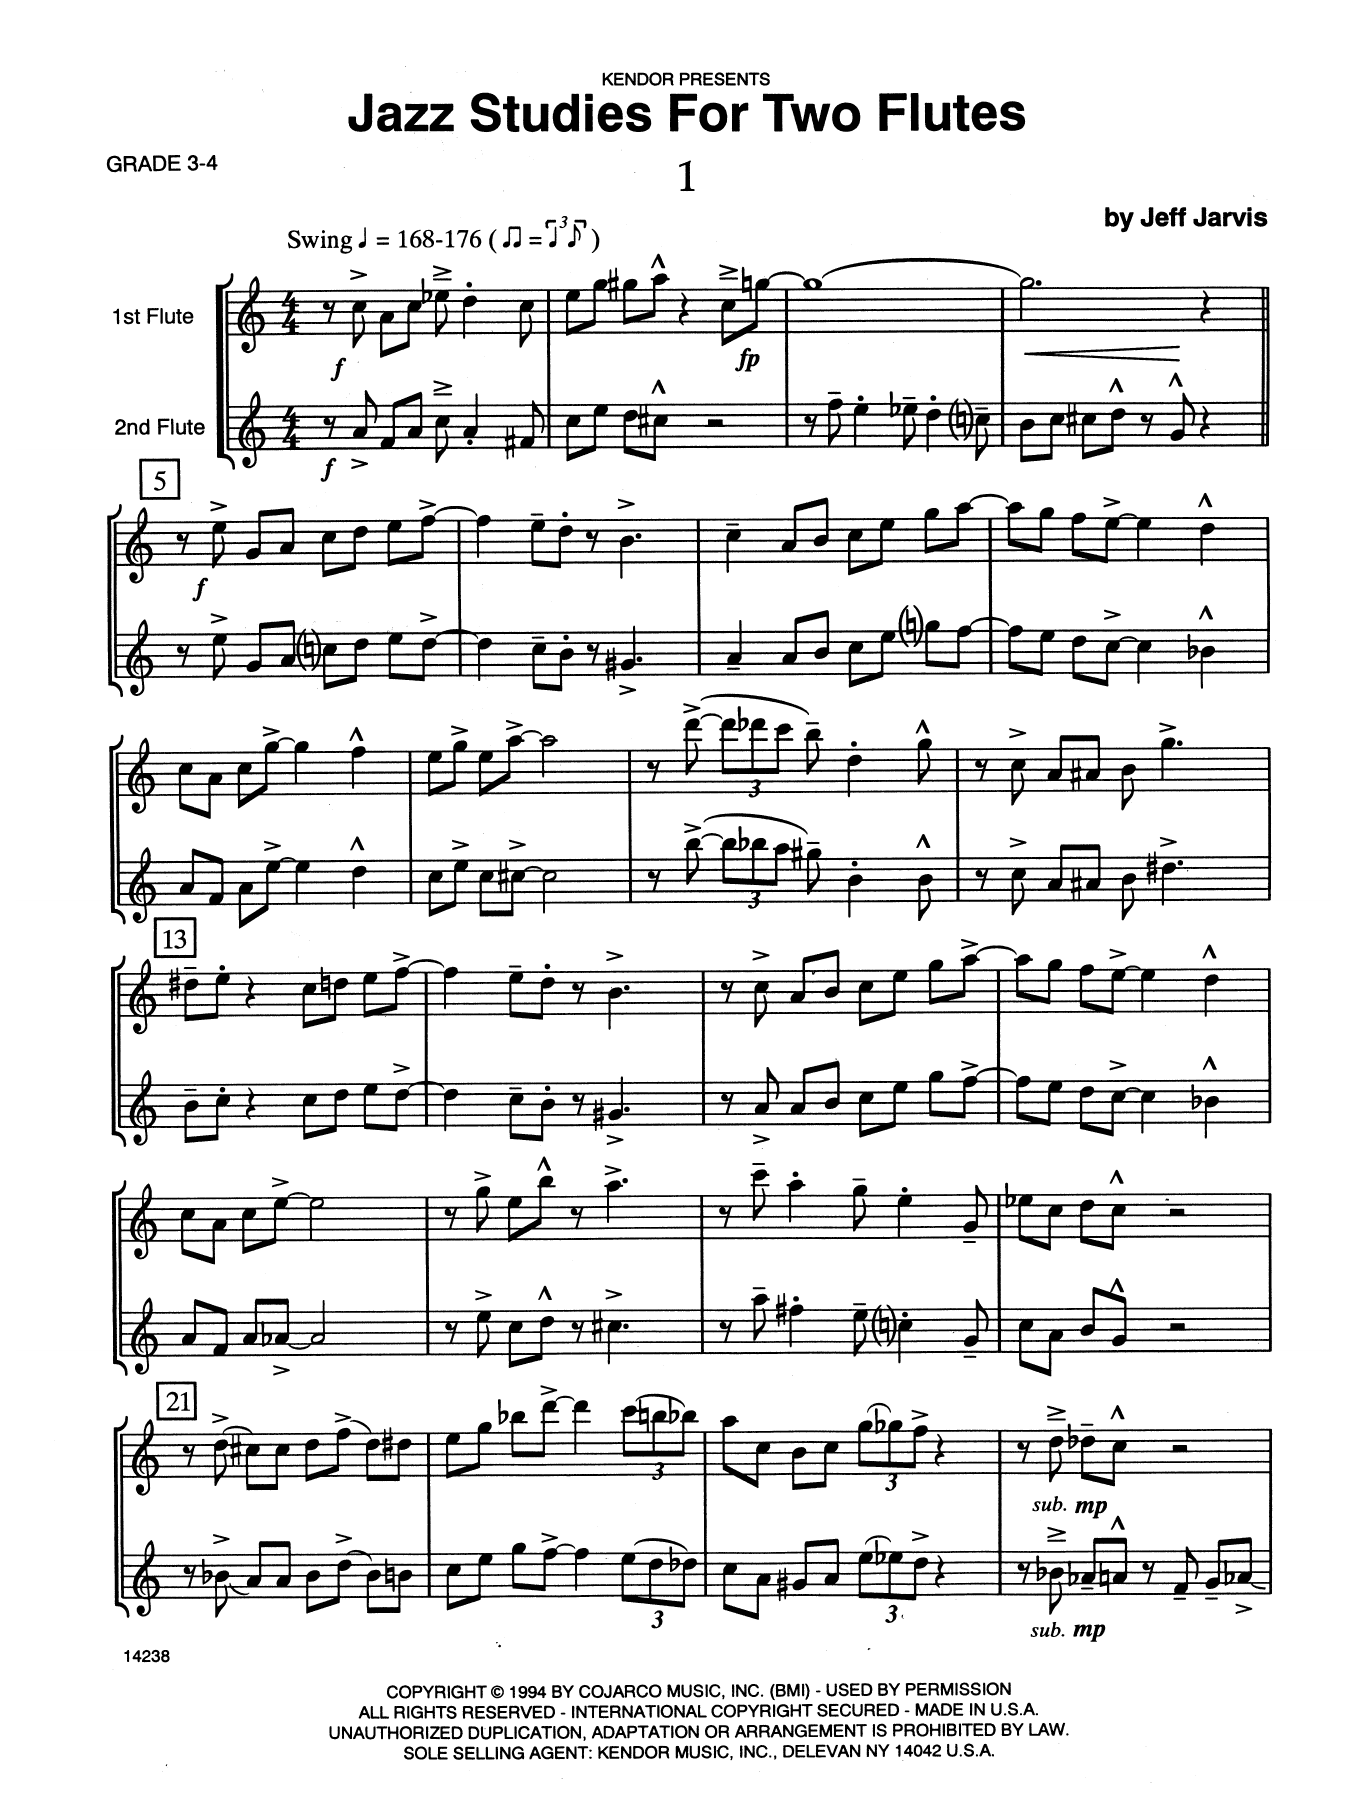 Jazz Studies For Two Flutes, Volume 1 Sheet Music